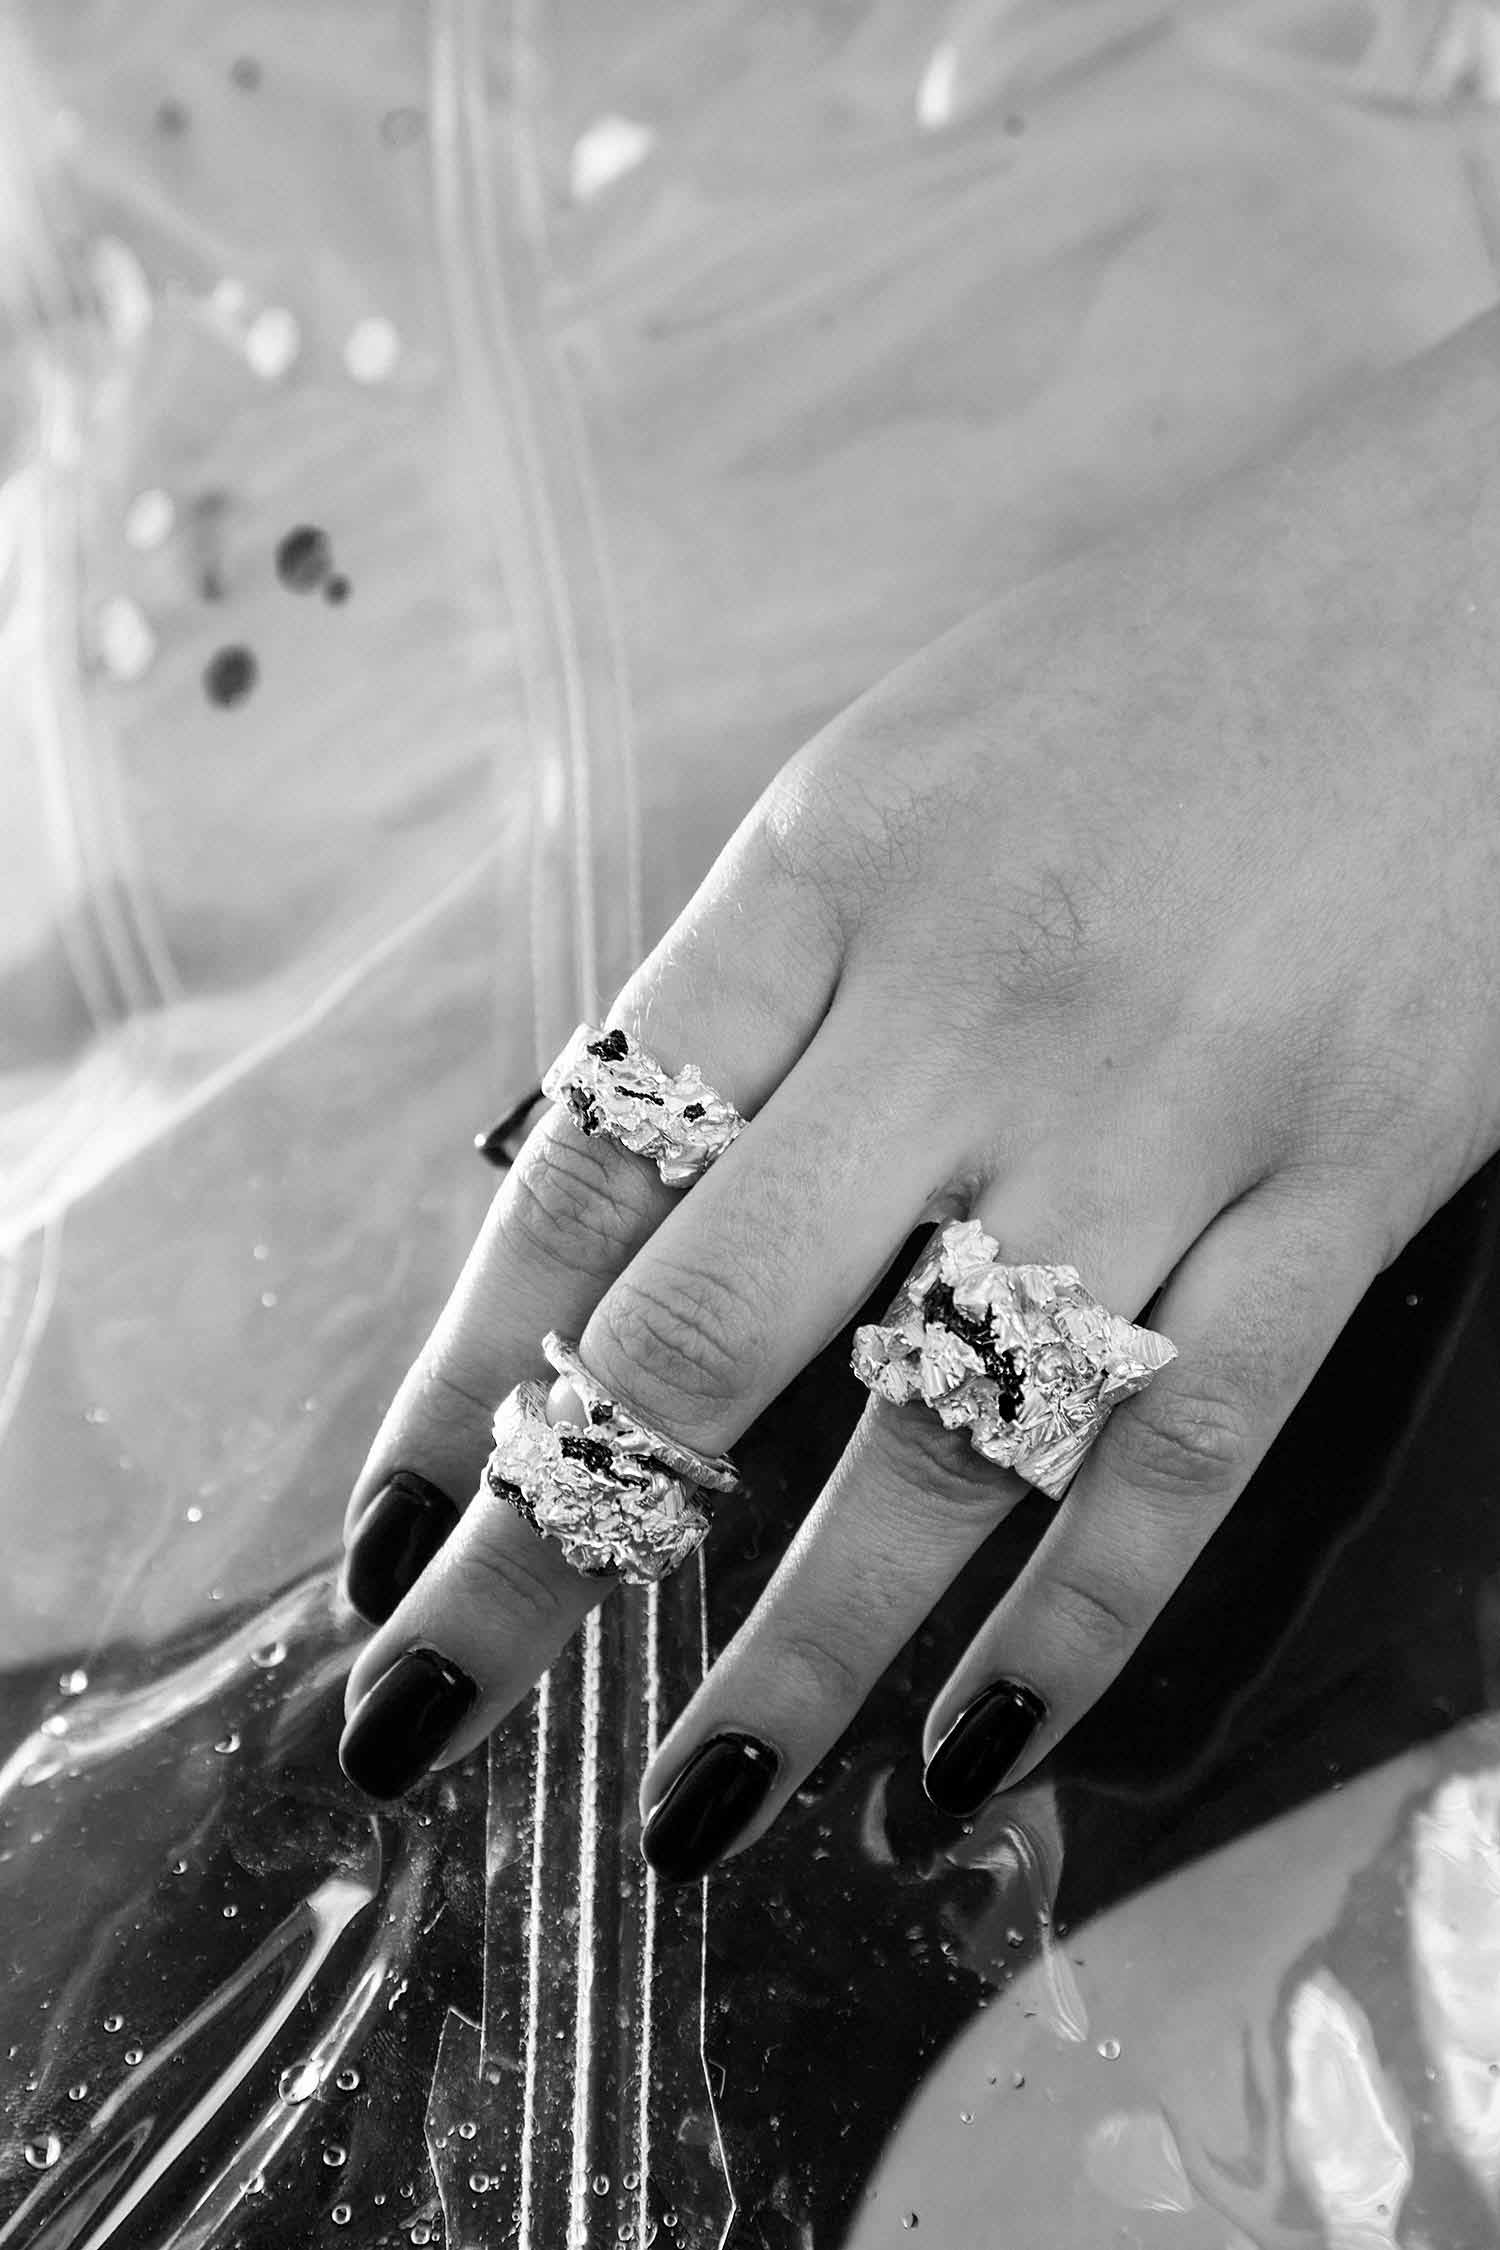 Close-up image of model hands with Zydrune Anomaly statement rings.